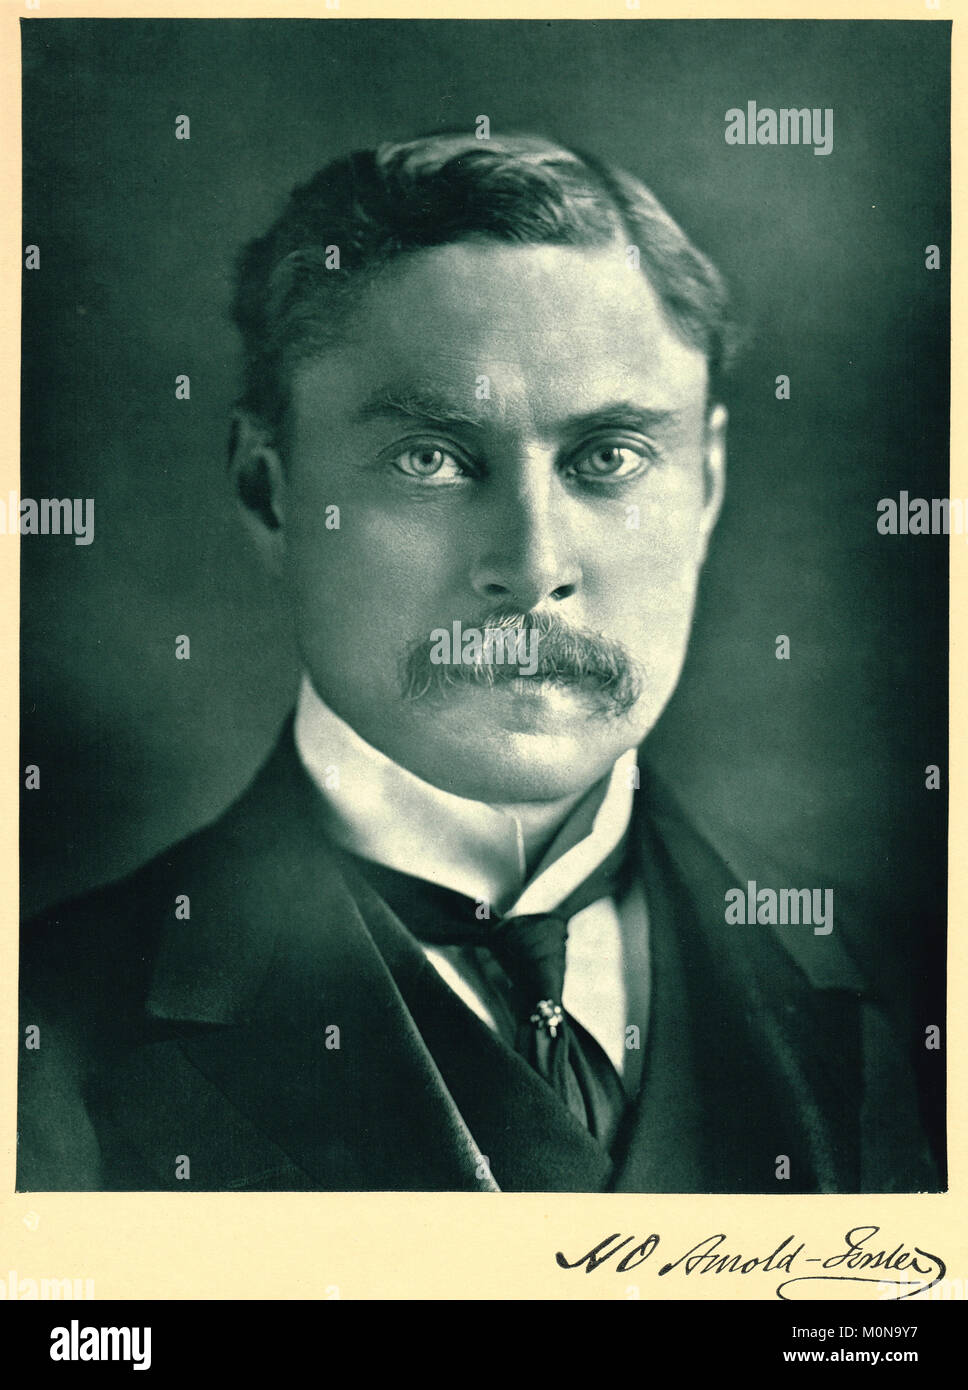 H. O. Arnold-Forster, (1855-1909) - Stock Image